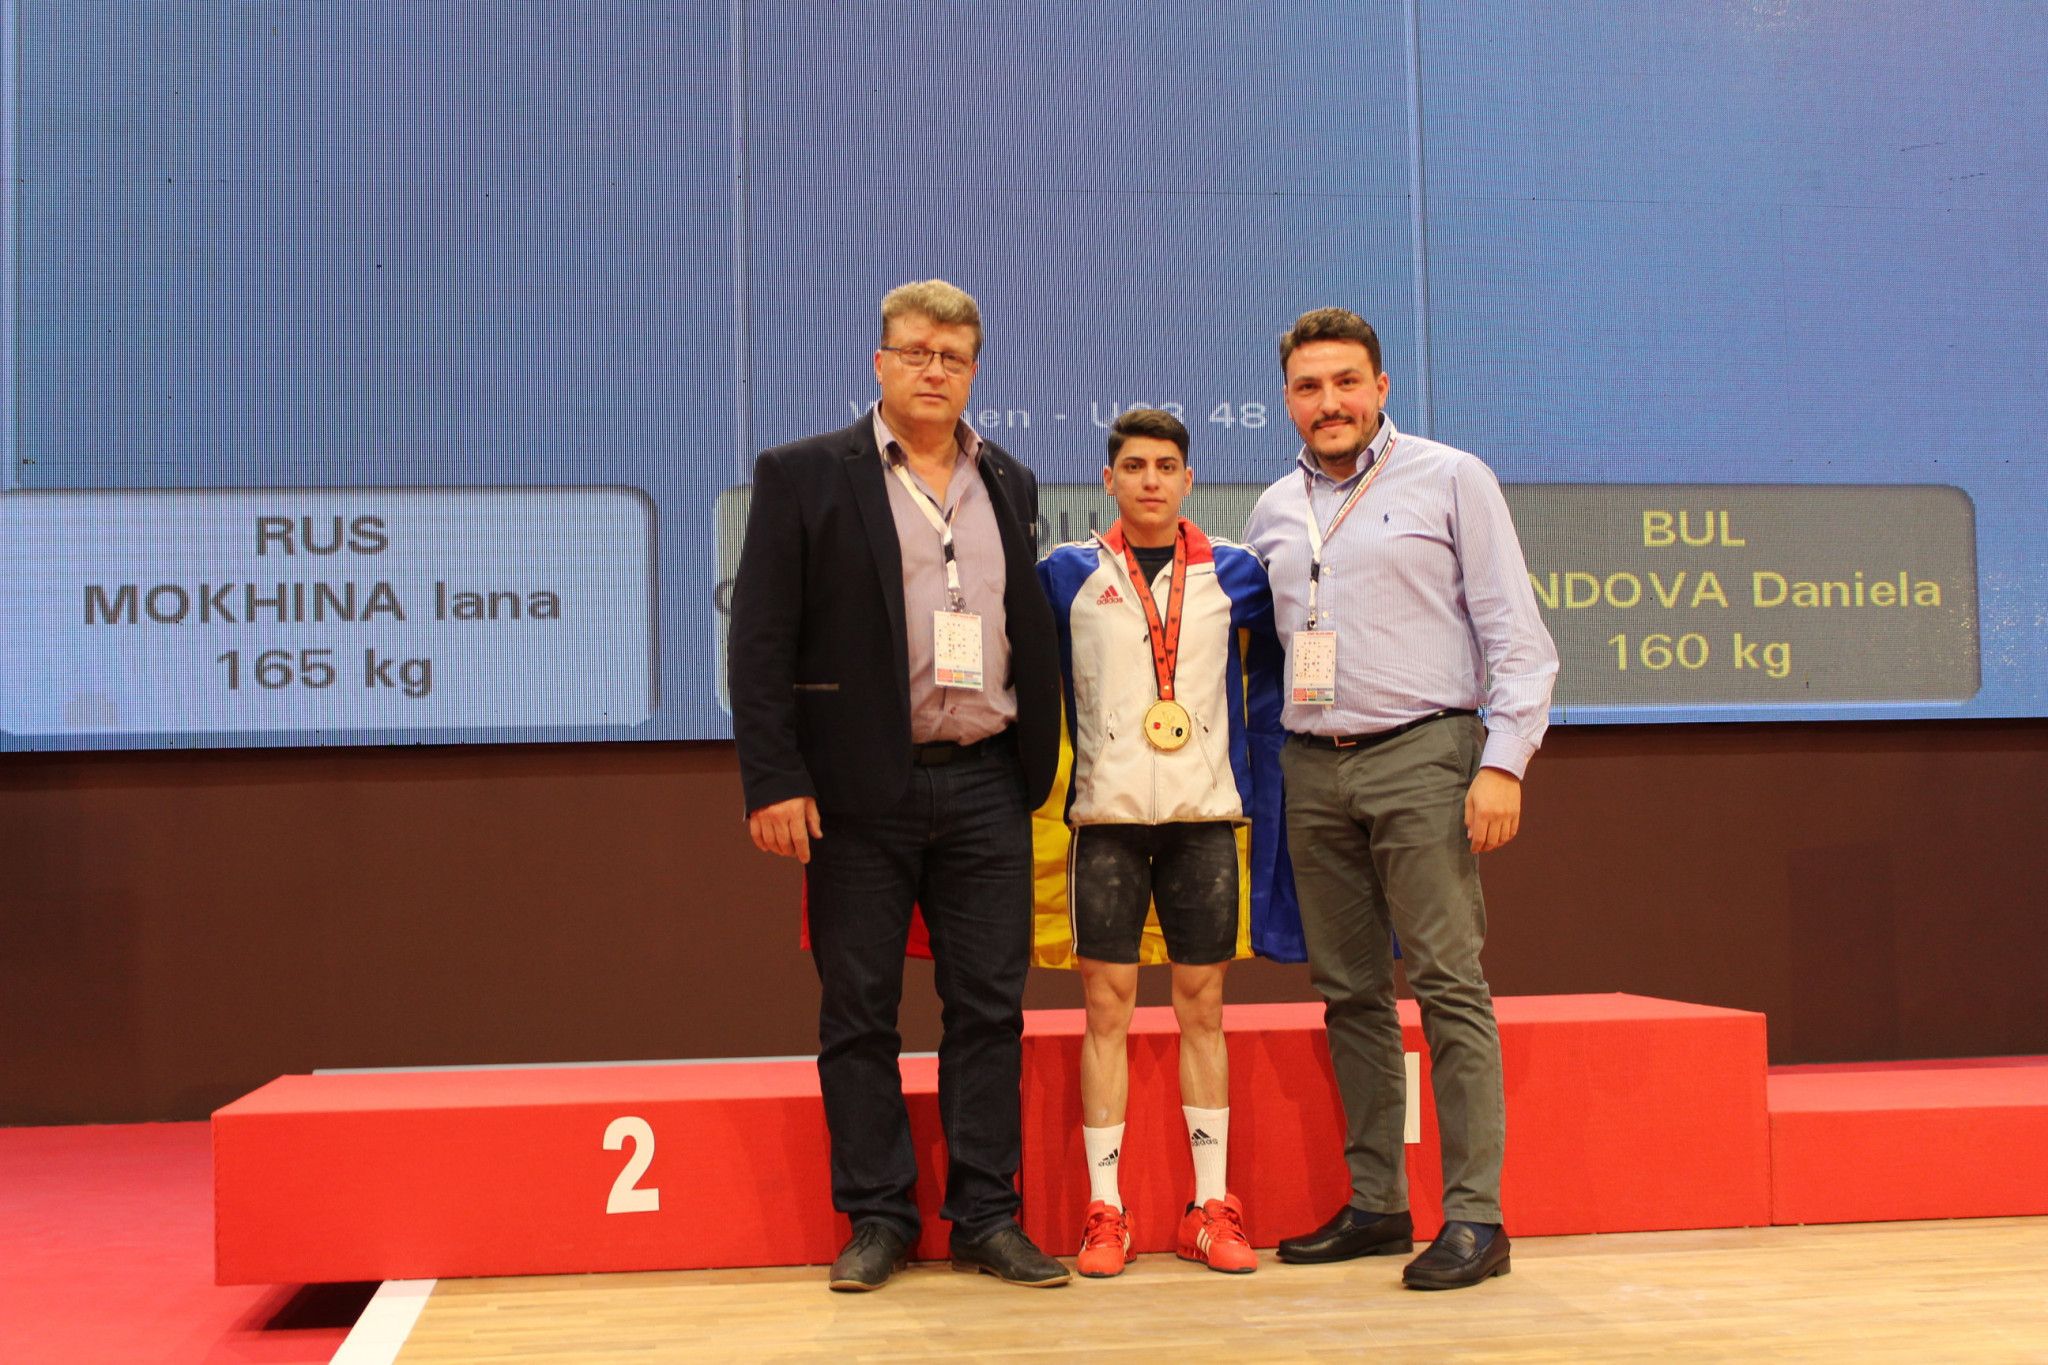 Nicu Vlad, a Romanian weightlifting legend, left, with today's gold medallist Monica Csengeri and Alex Padure, secretary general of the Romanian Weightlifting Federation, right ©RWF